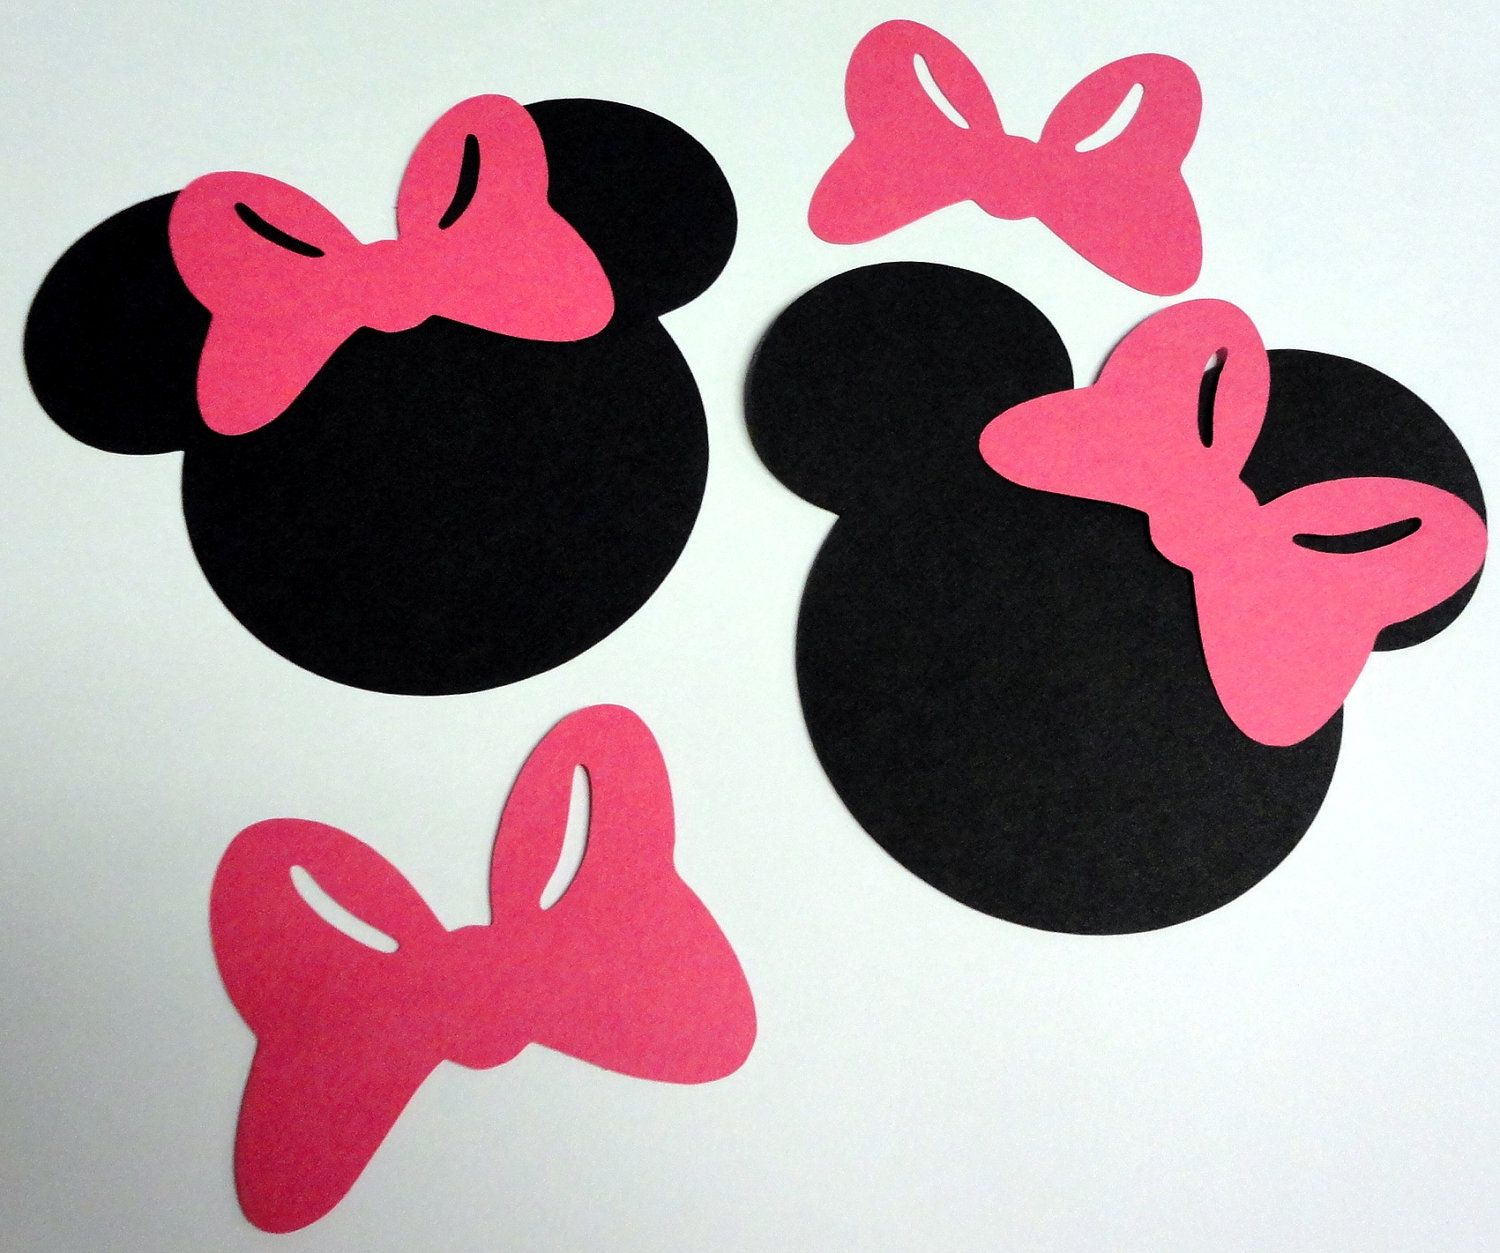 50 5 Minnie Mouse Head Silhouettes Black Cutouts With Pink Bows Not Attached Die Cut Paper Crafting Scrapbooking Card Making 2000 Via Etsy